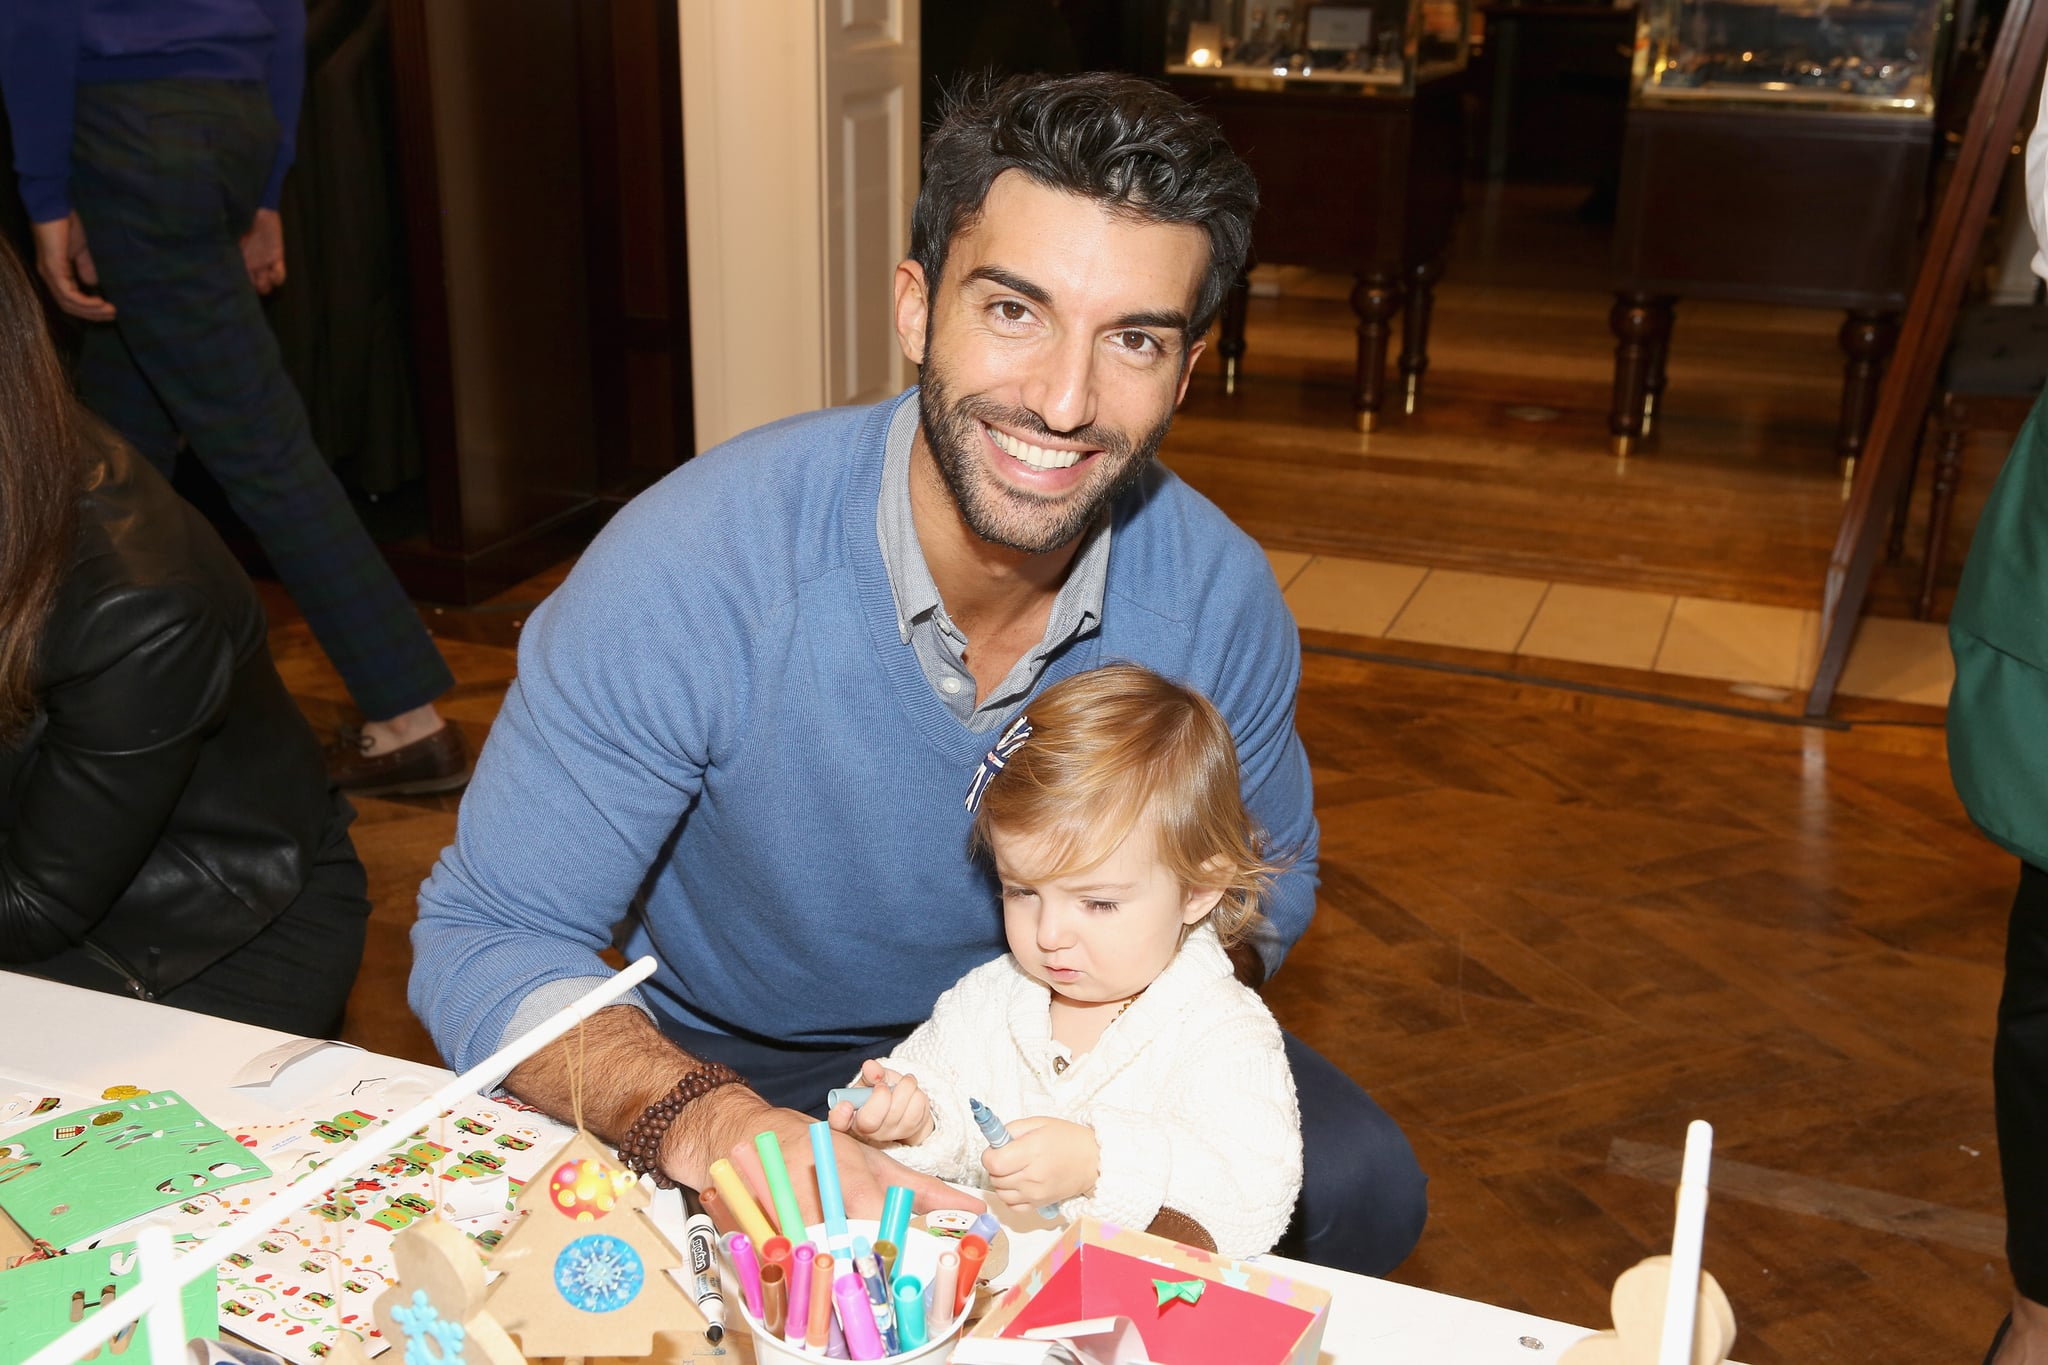 BEVERLY HILLS, CA - DECEMBER 03:  Actor Justin Baldoni attends Brooks Brothers holiday celebration with St. Jude Children's Research Hospital on December 3, 2016 in Beverly Hills, California.  (Photo by Rachel Murray/Getty Images for Brooks Brothers)